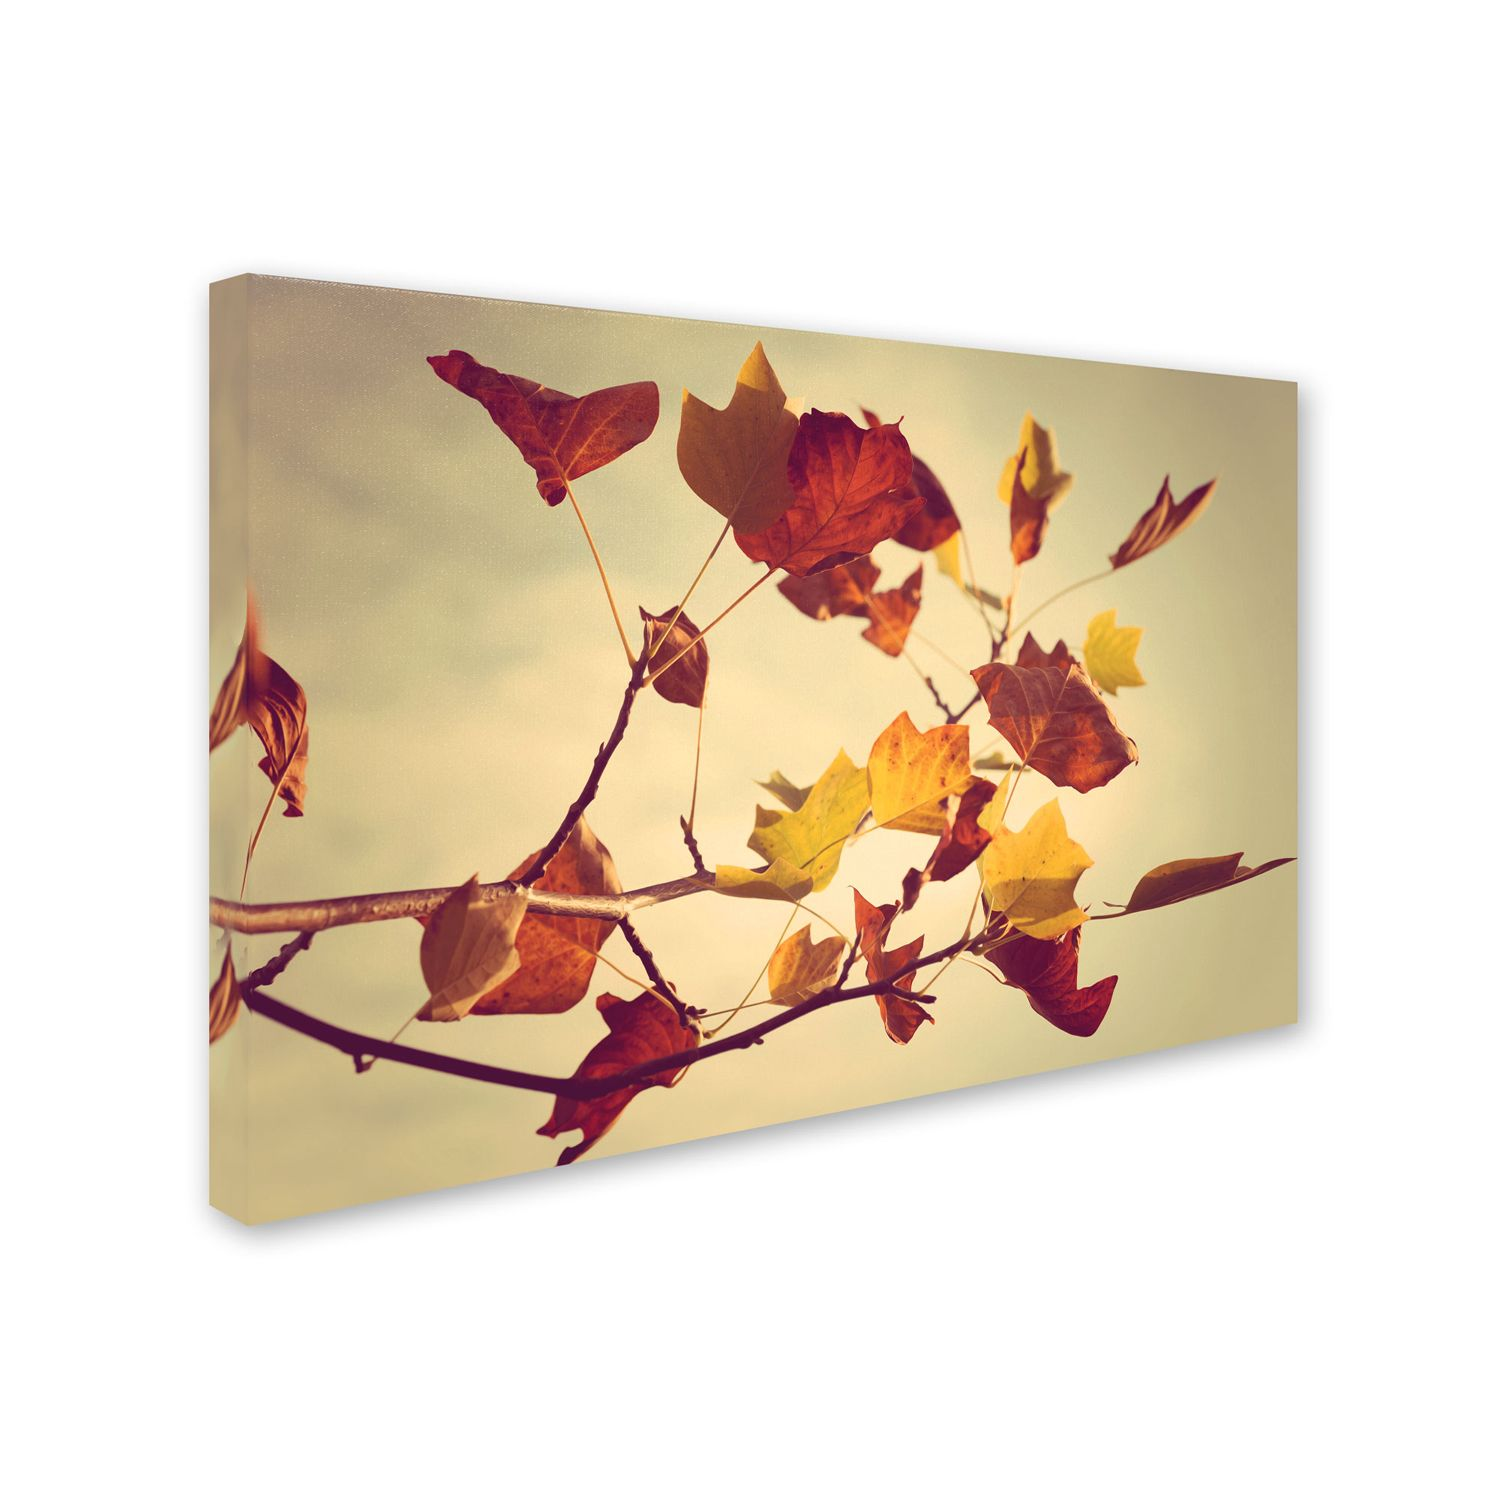 Orange Wall Decor, Home Decor | Kohl\'s